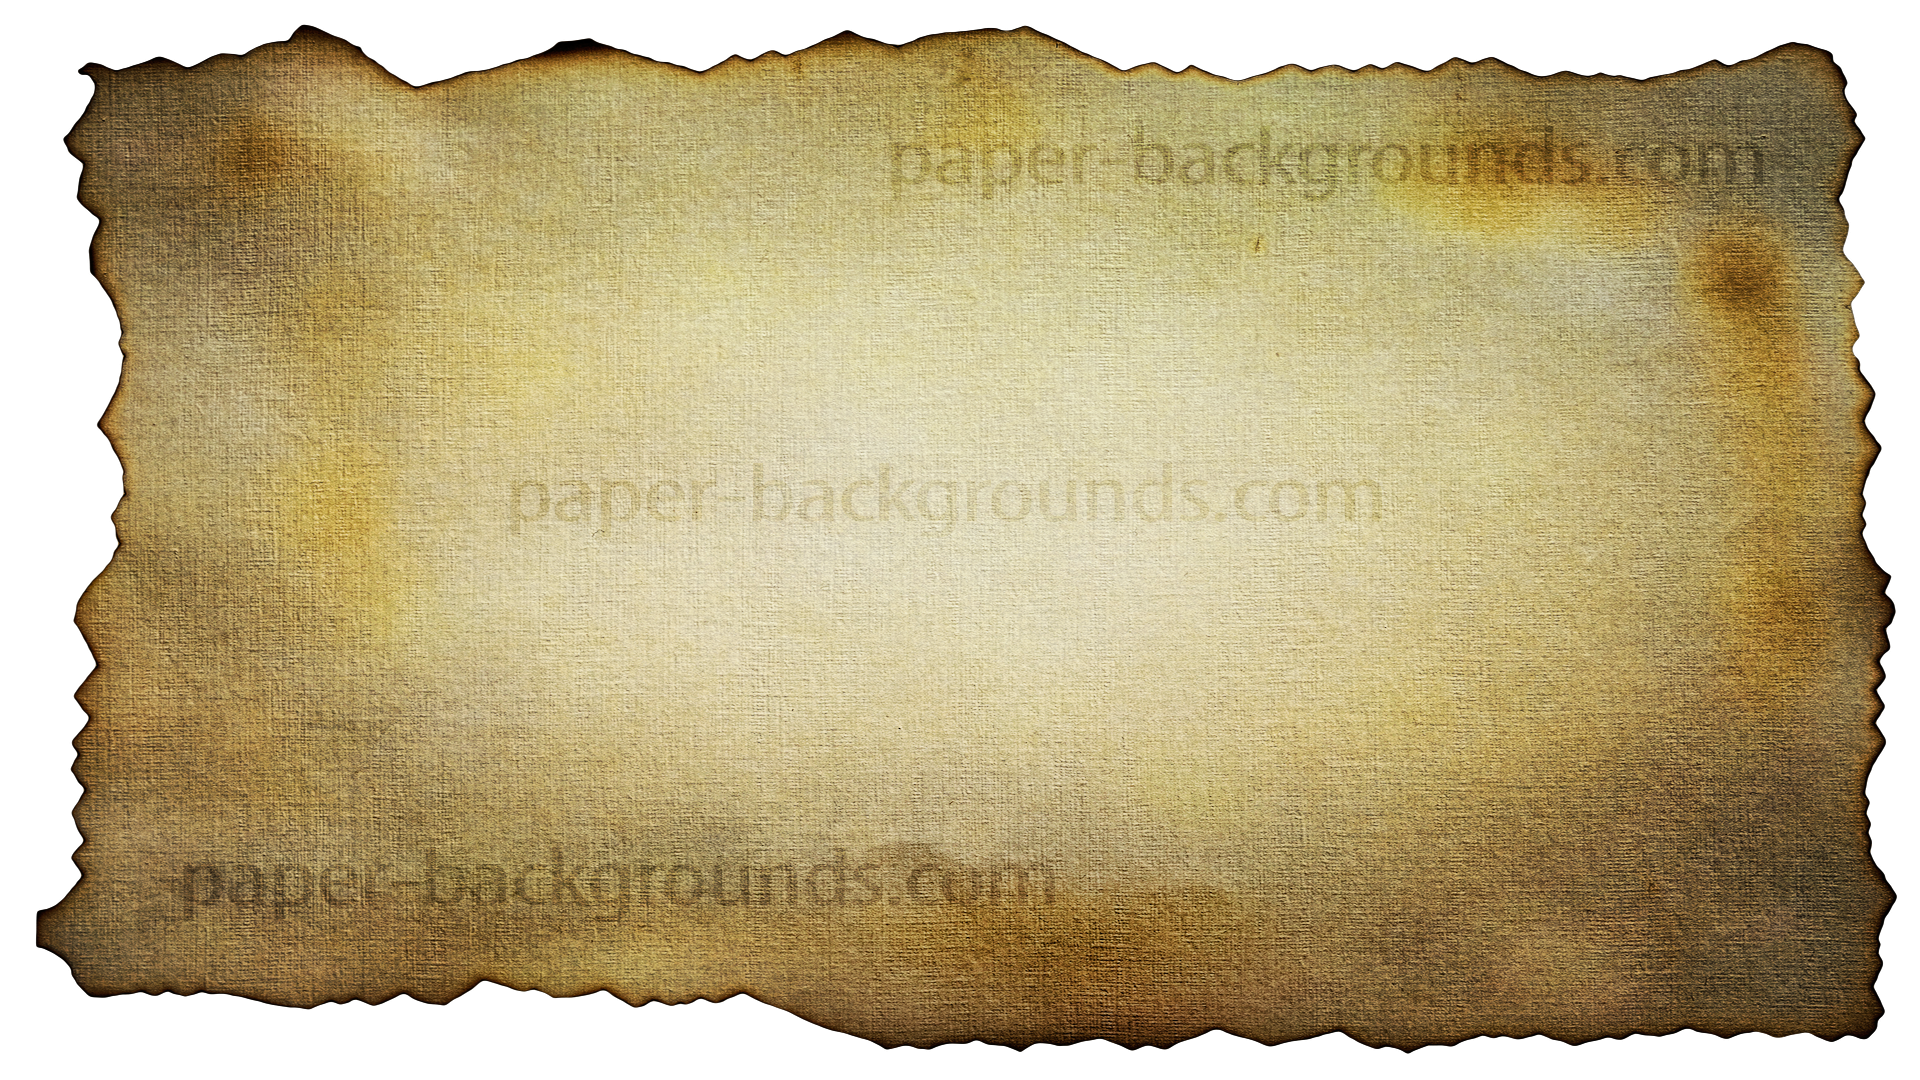 Old Grunge Burned Paper Edges Background Free HD